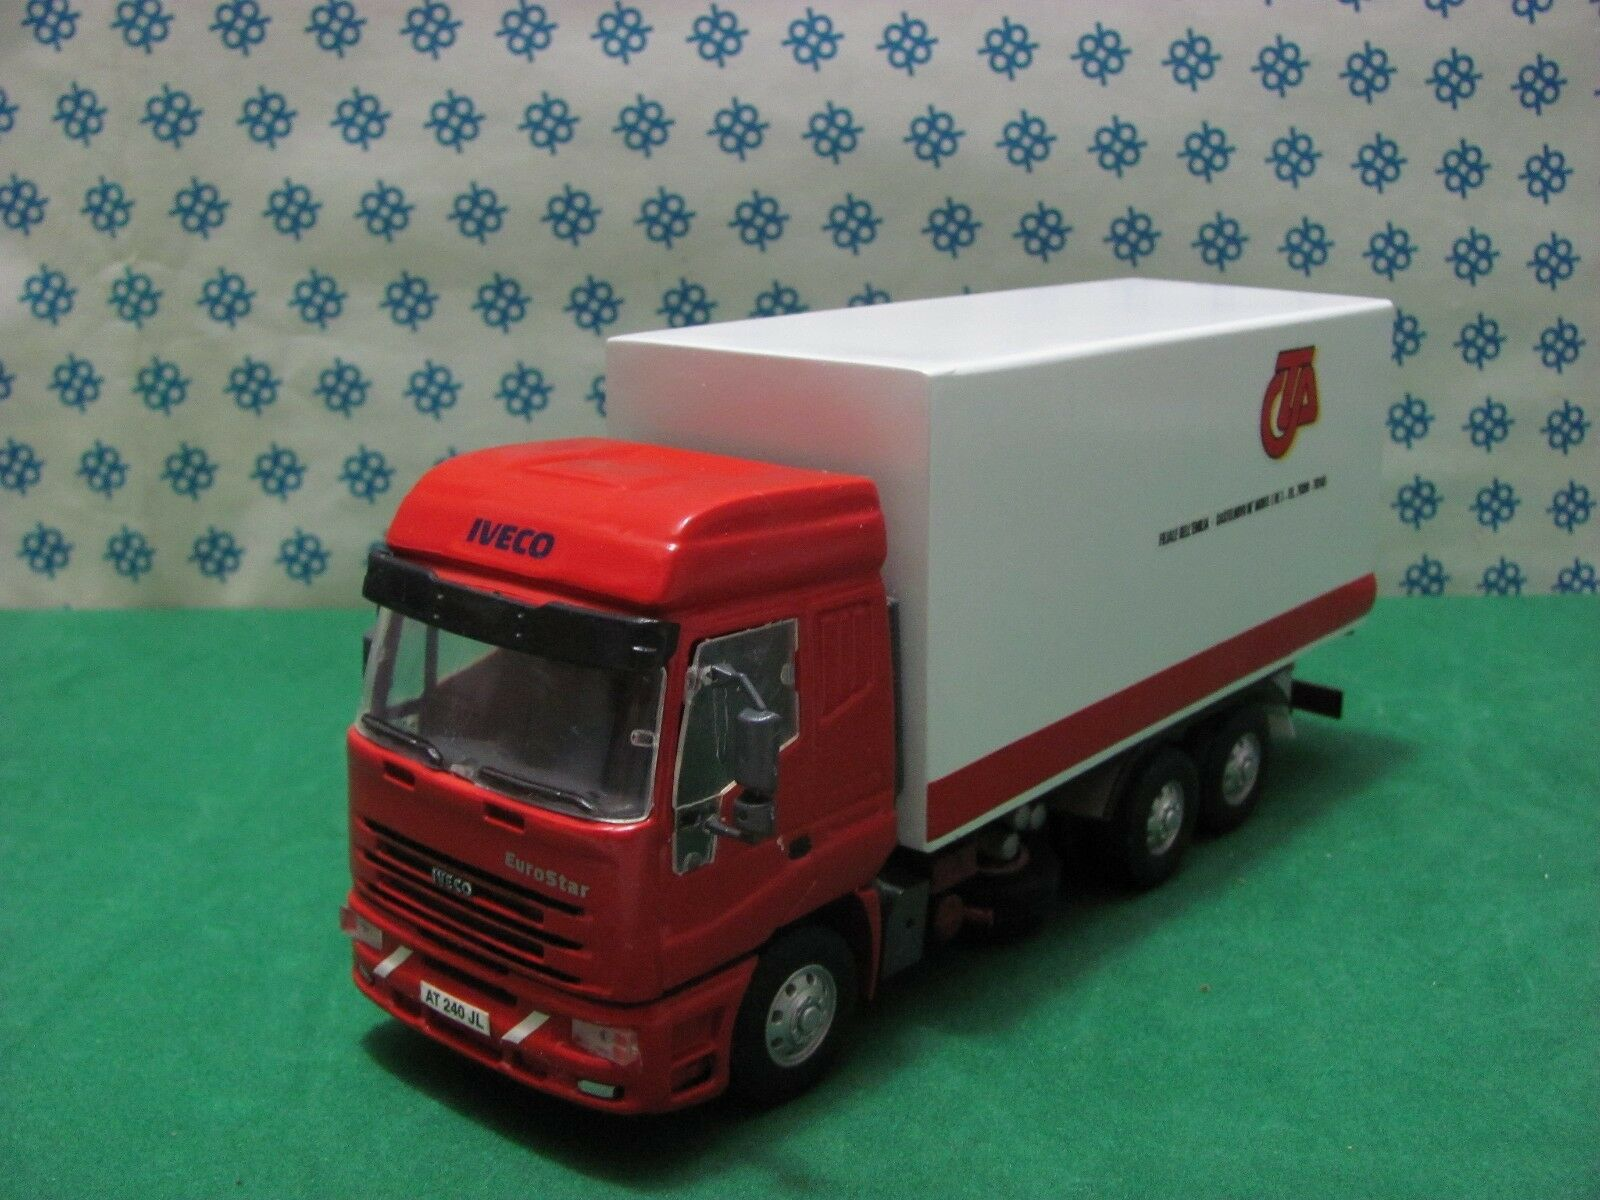 CAMION  IVECO Eurostar  3 Assi cab. media Furgone CTA -1/43 Old Cars Modificato | Terrific Value